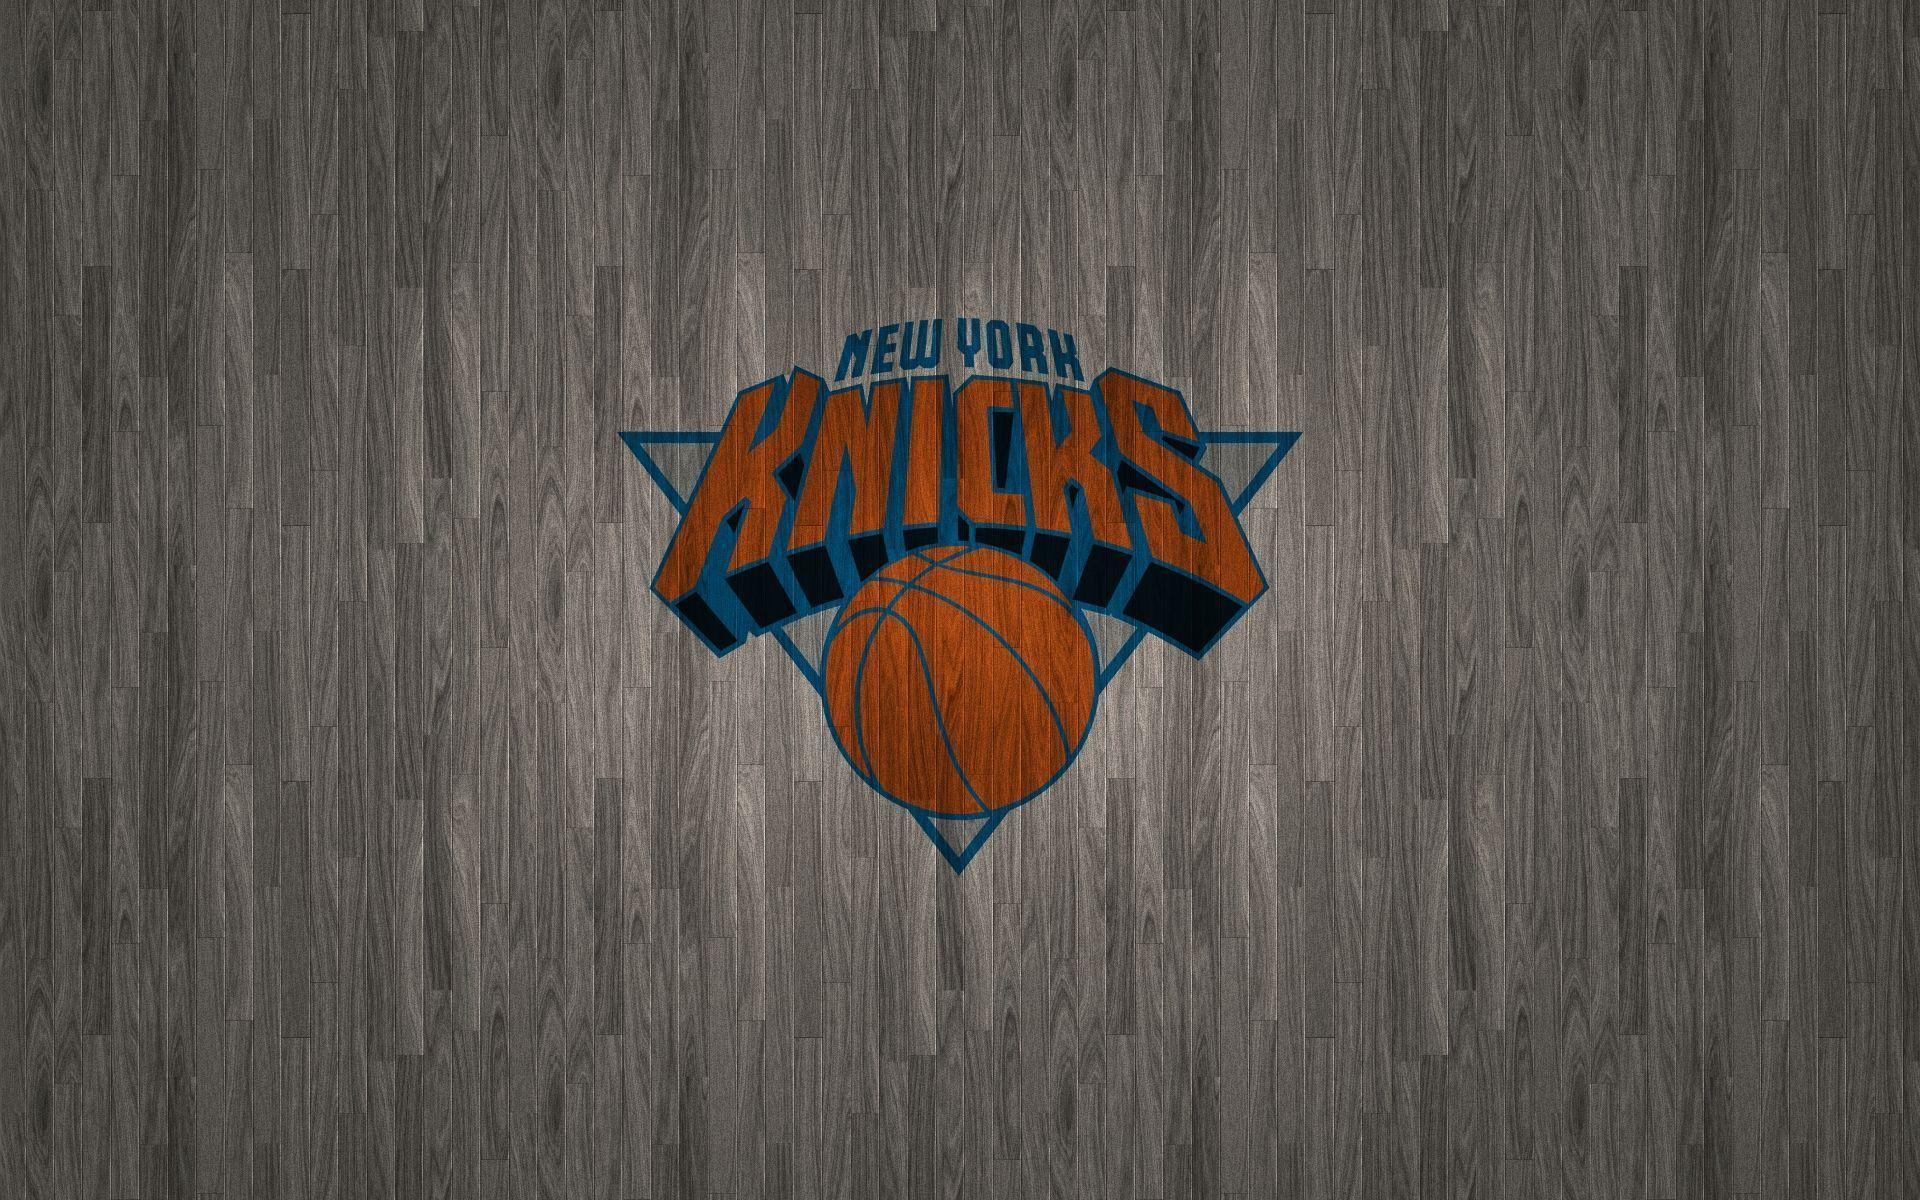 7 New York Knicks HD Wallpapers | Backgrounds - Wallpaper Abyss